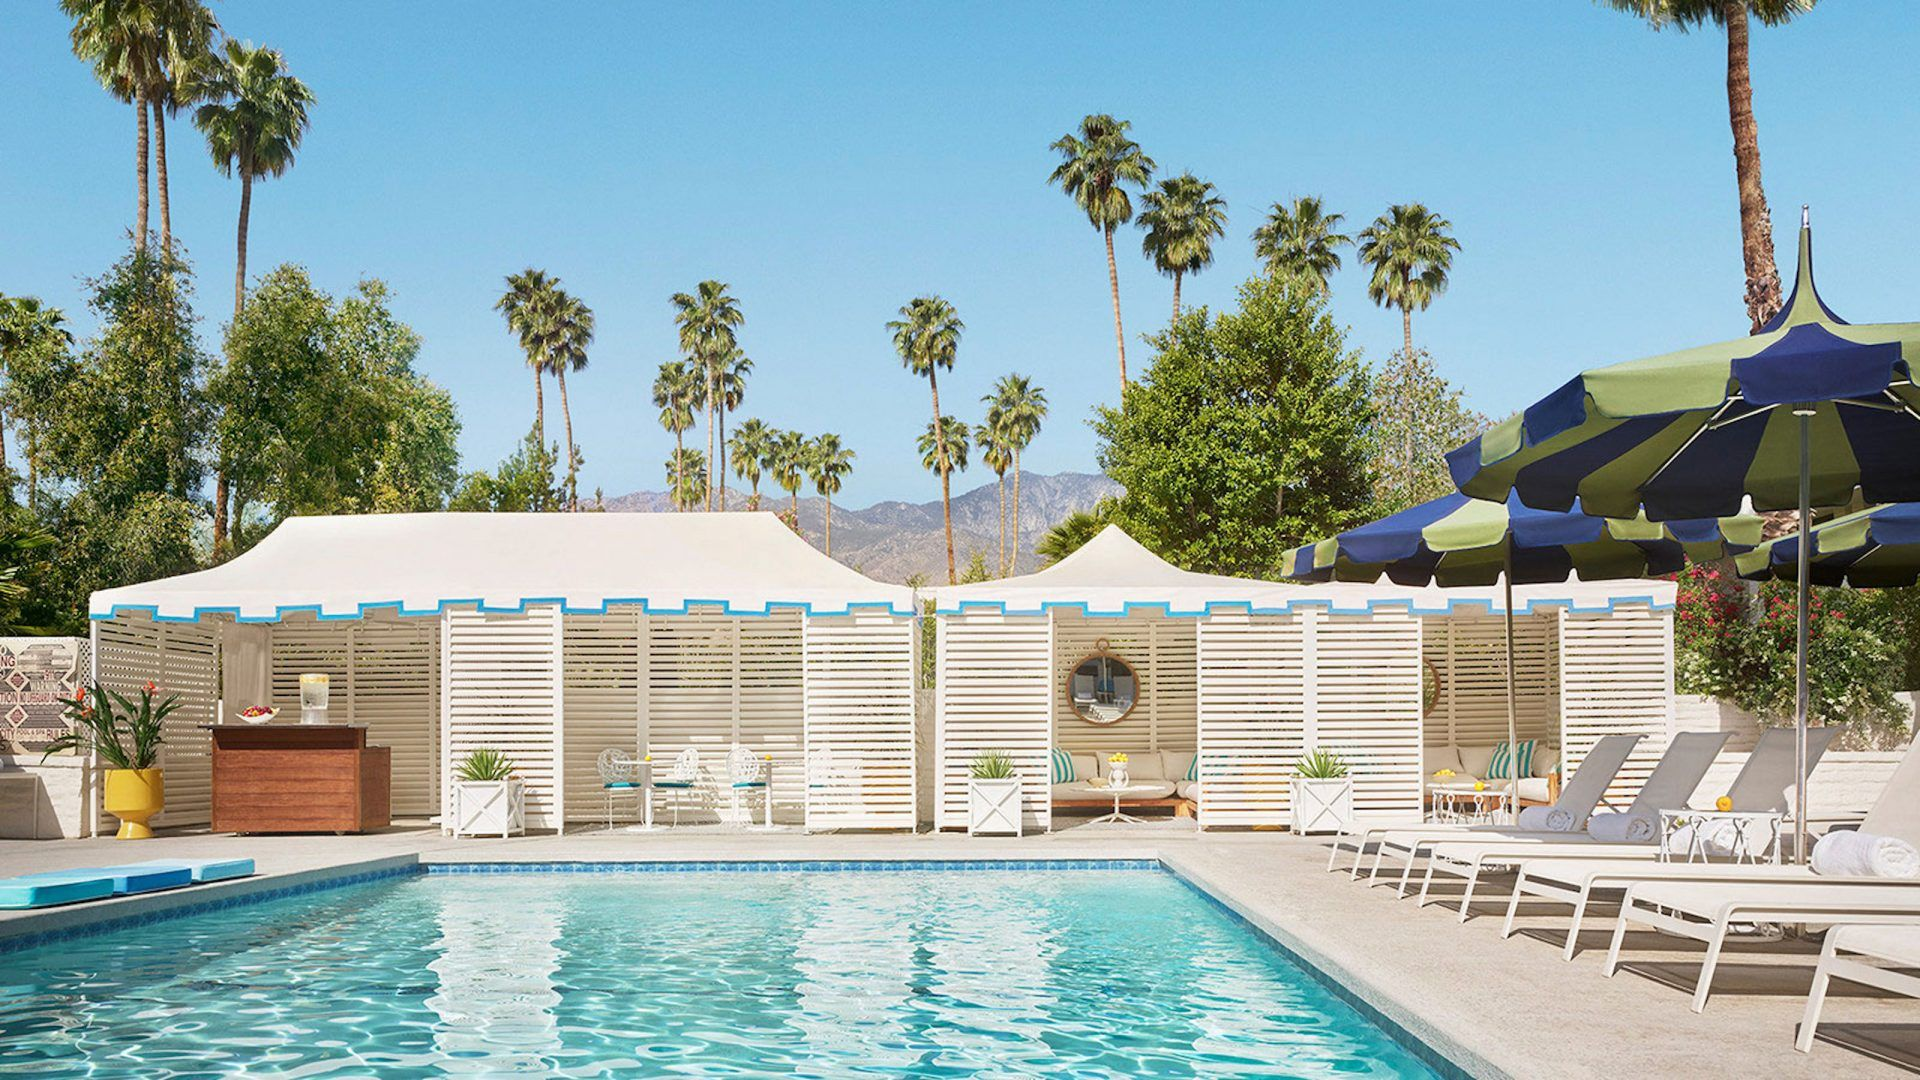 48 Hours In Palm Springs